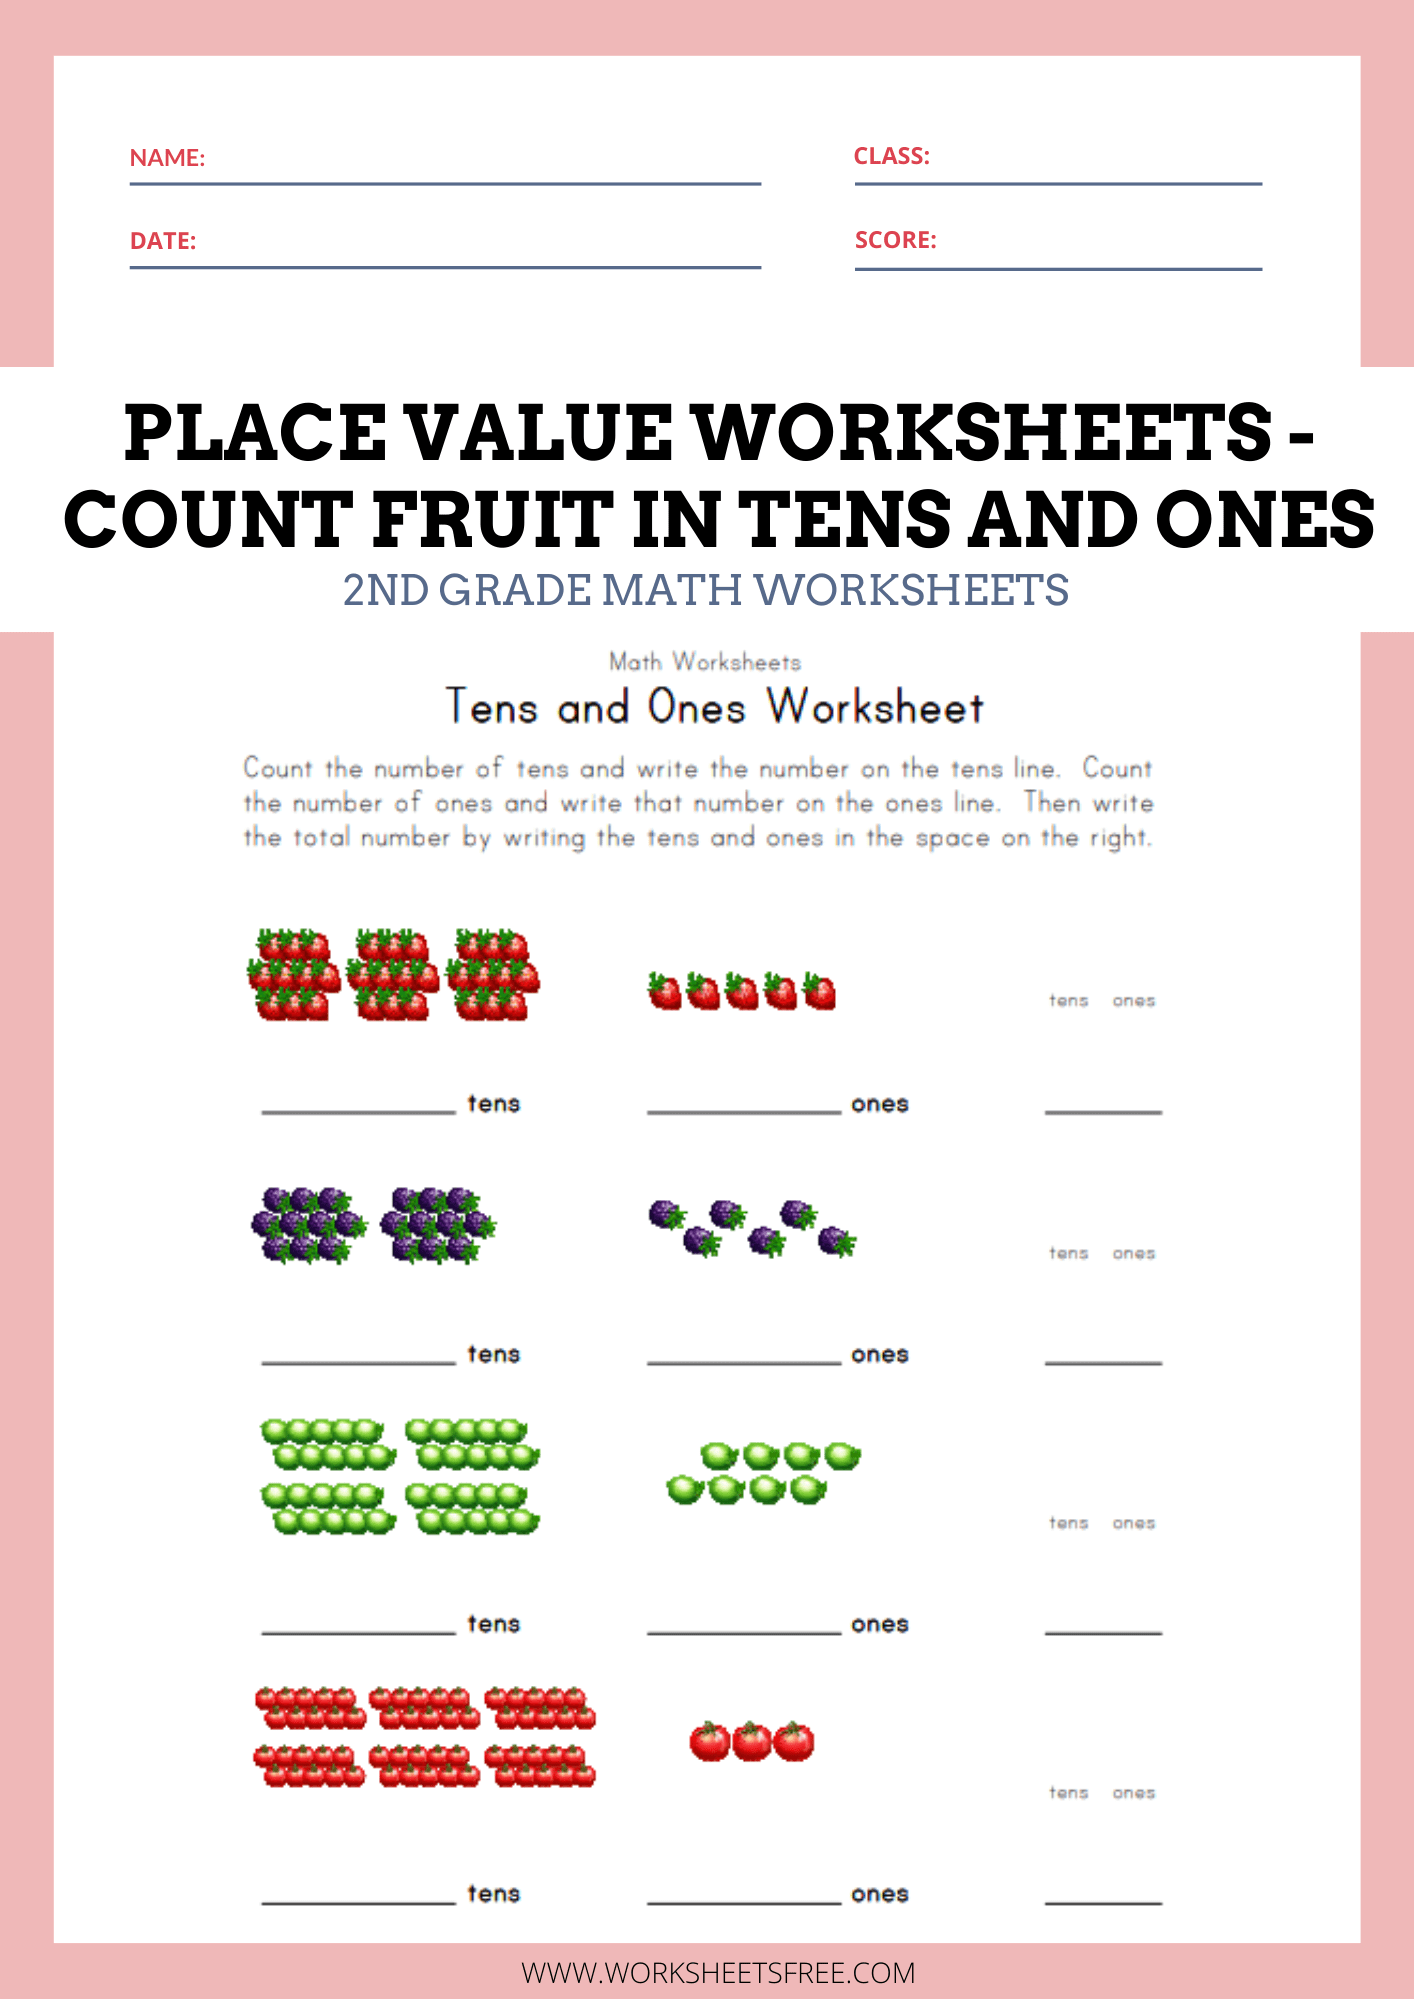 Place Value Worksheets Tens And Ones Count Fruit In Tens